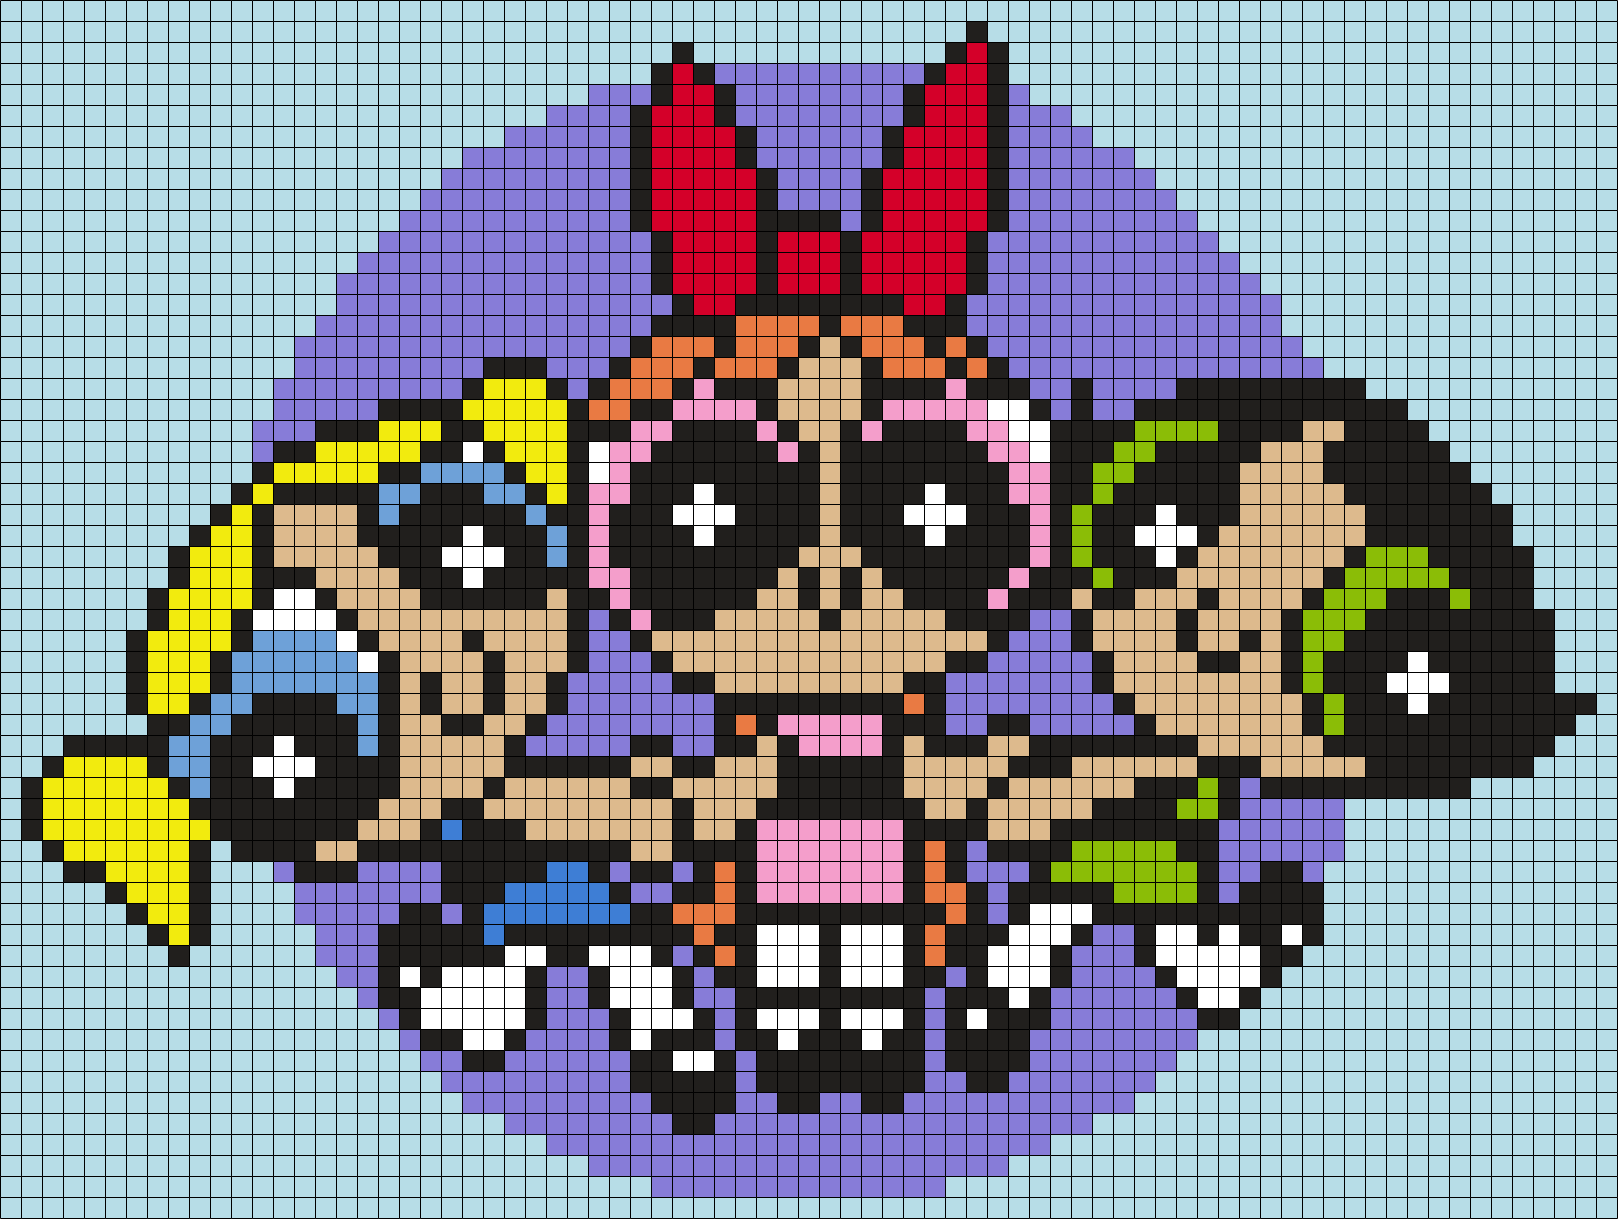 The Powerpuff Girls Perler Bead Pattern / Bead Sprite